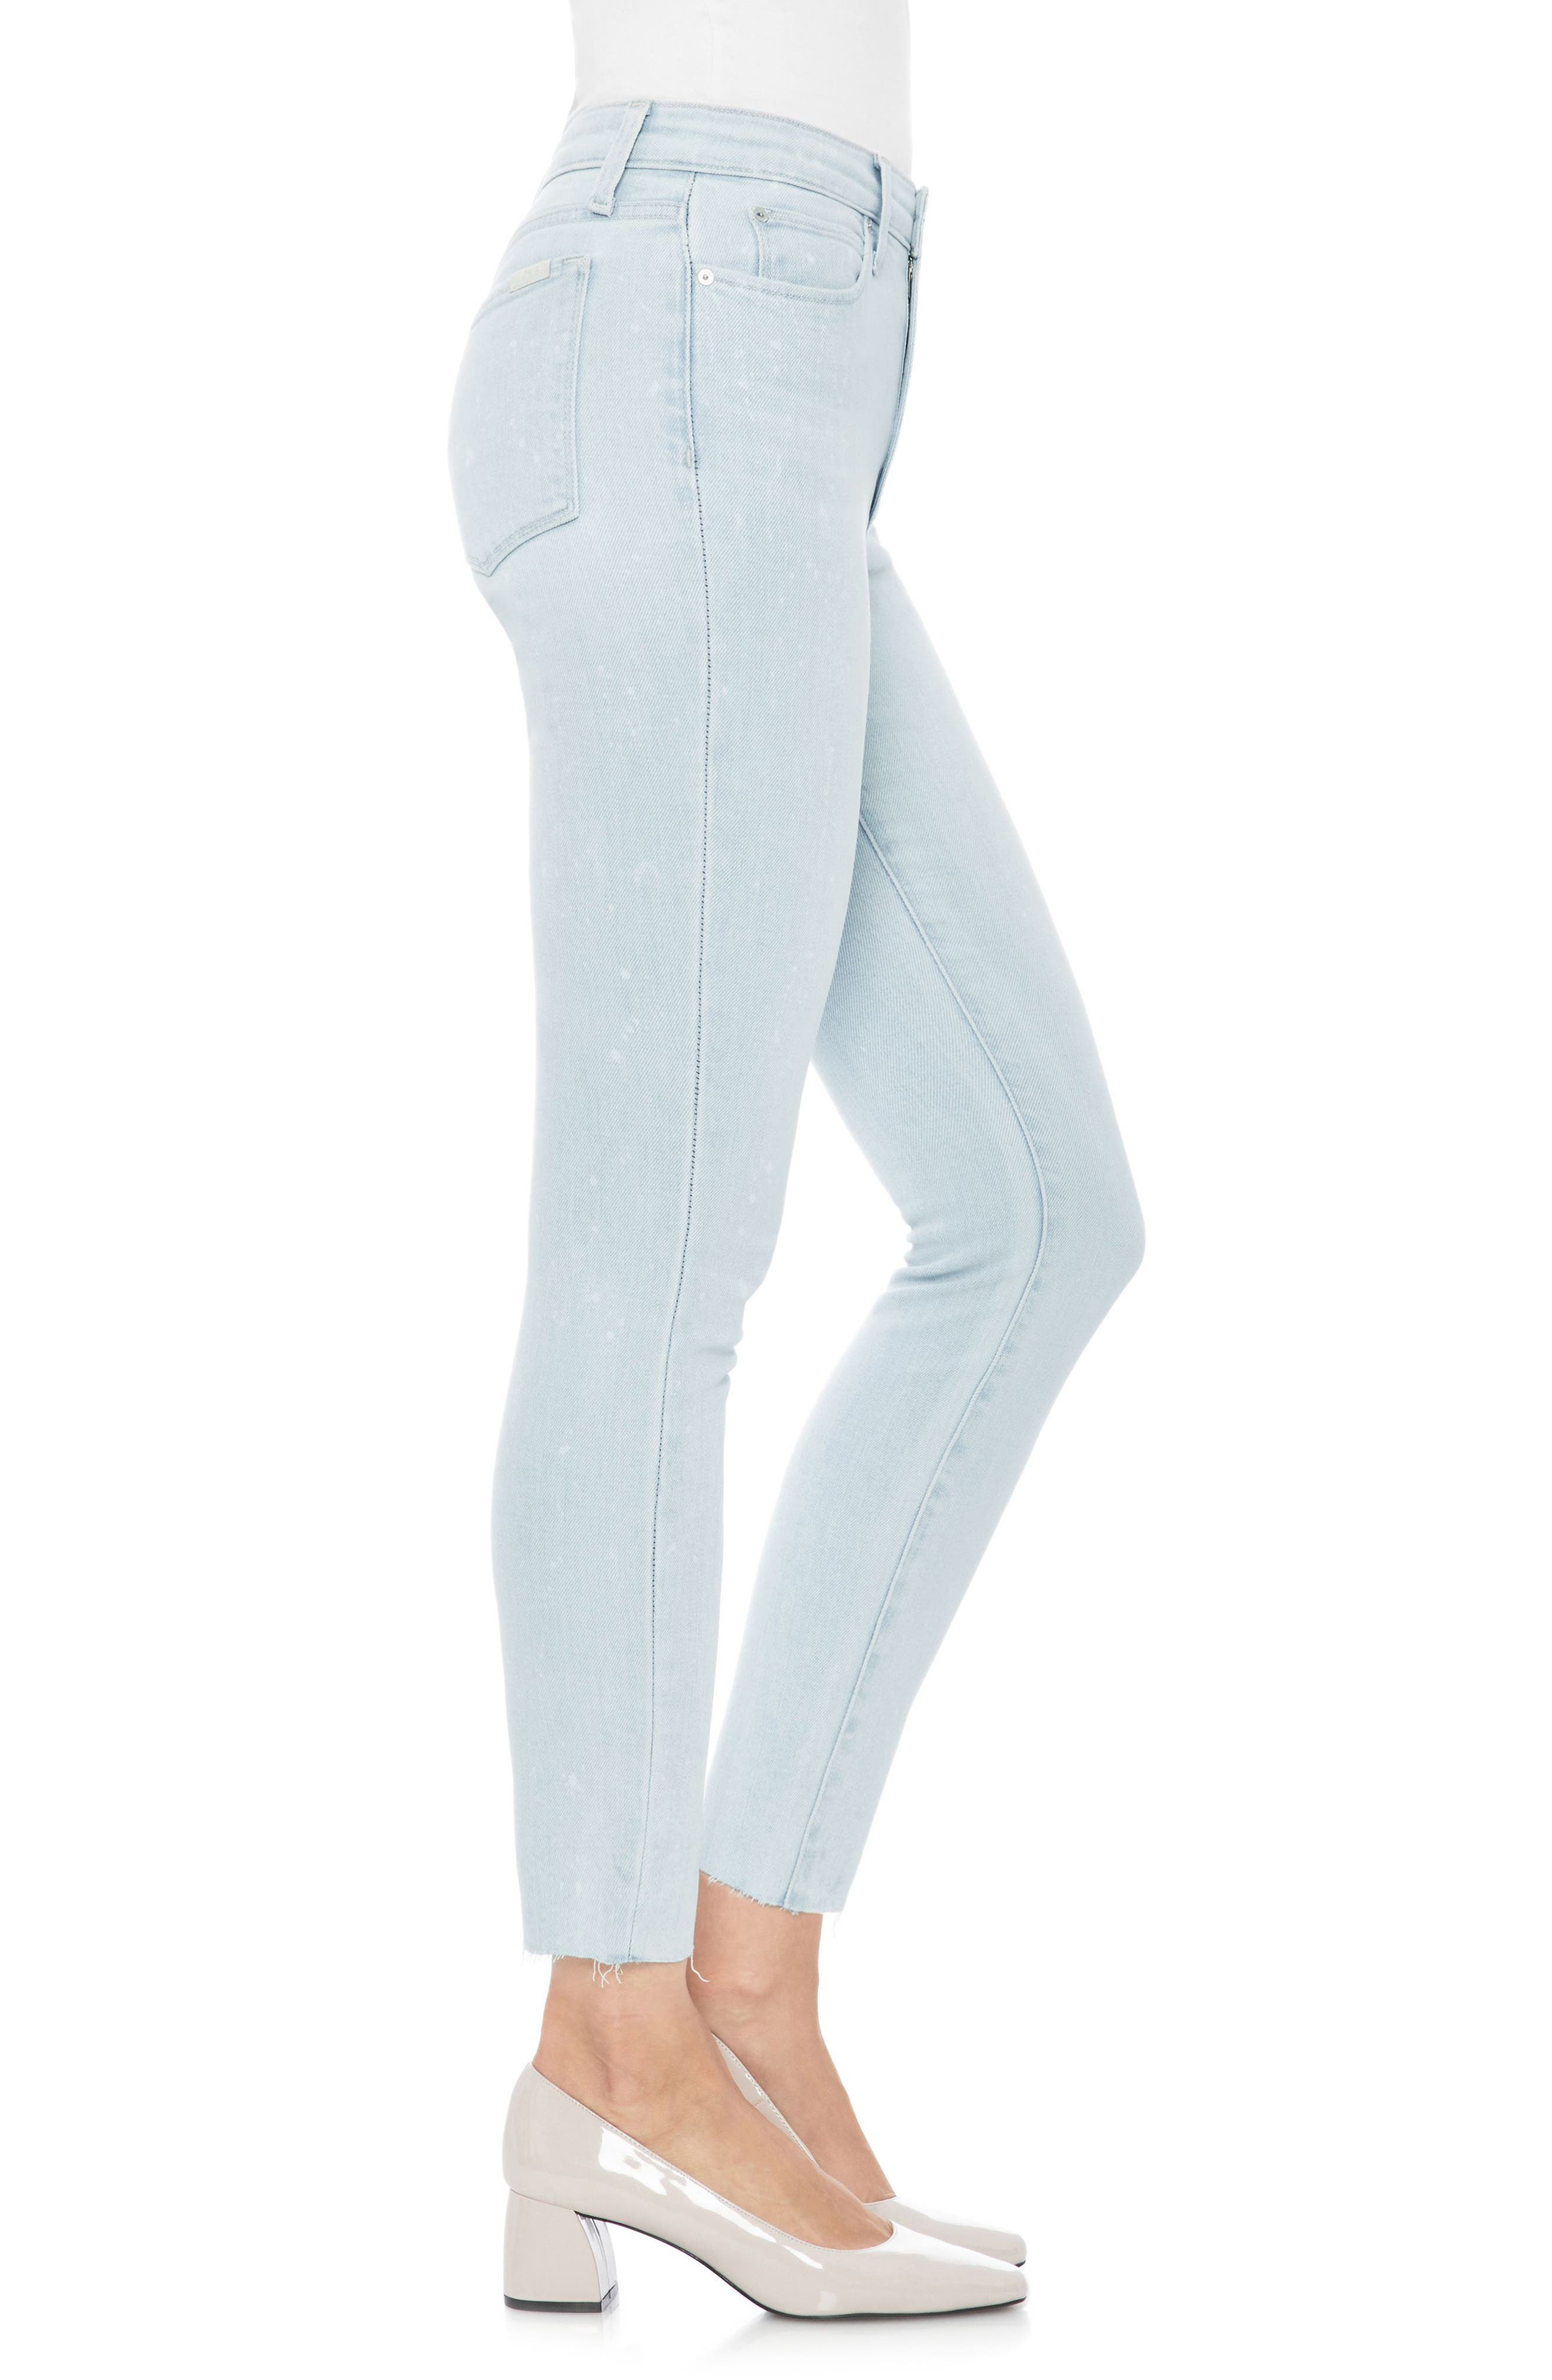 JOE'S,                             Flawless - Charlie High Waist Ankle Skinny Jeans,                             Alternate thumbnail 3, color,                             450